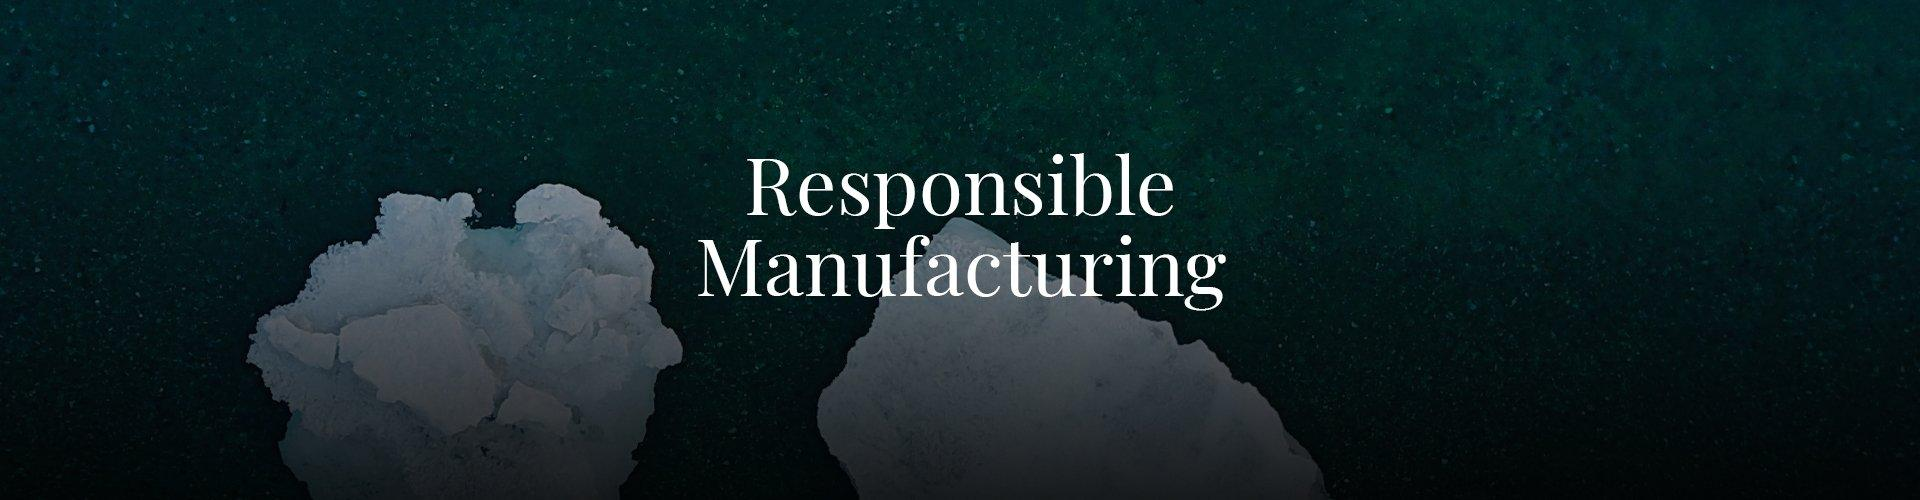 An aerial image of an ocean with icebergs floating in the water with text saying Responsible Manufacturing